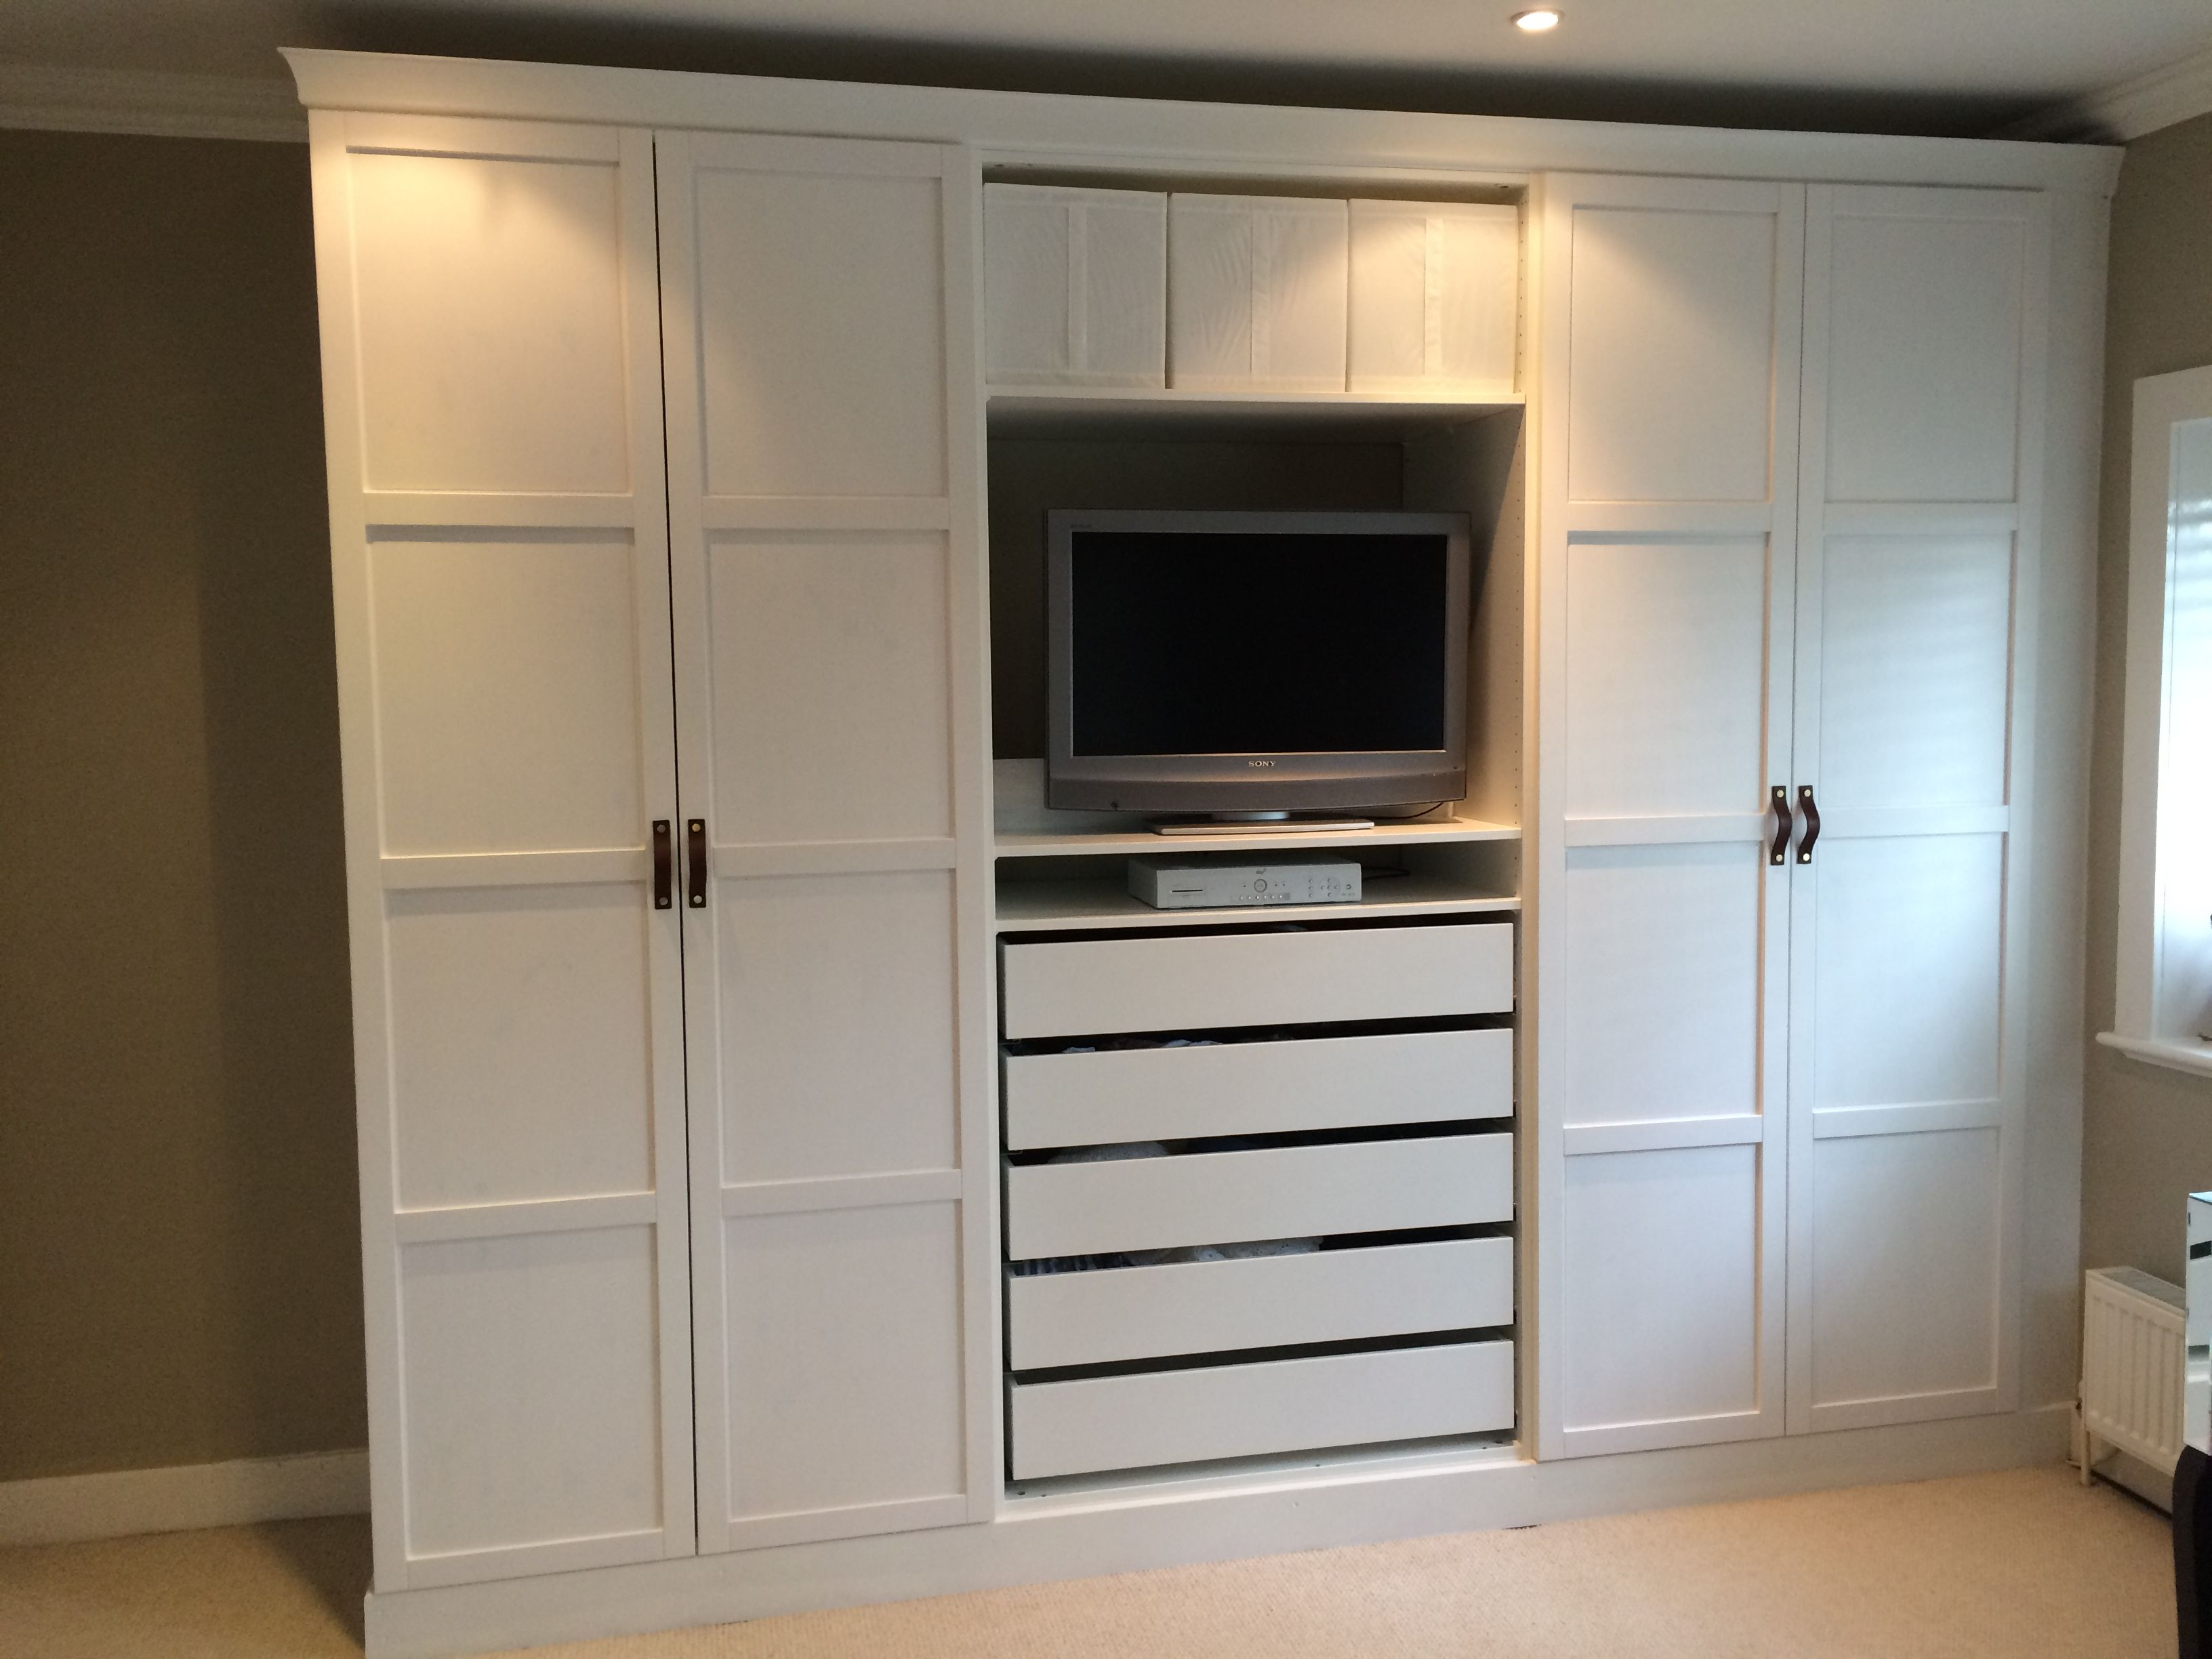 Ikea Pax Wardrobes Hacked To Look Built In With Leather